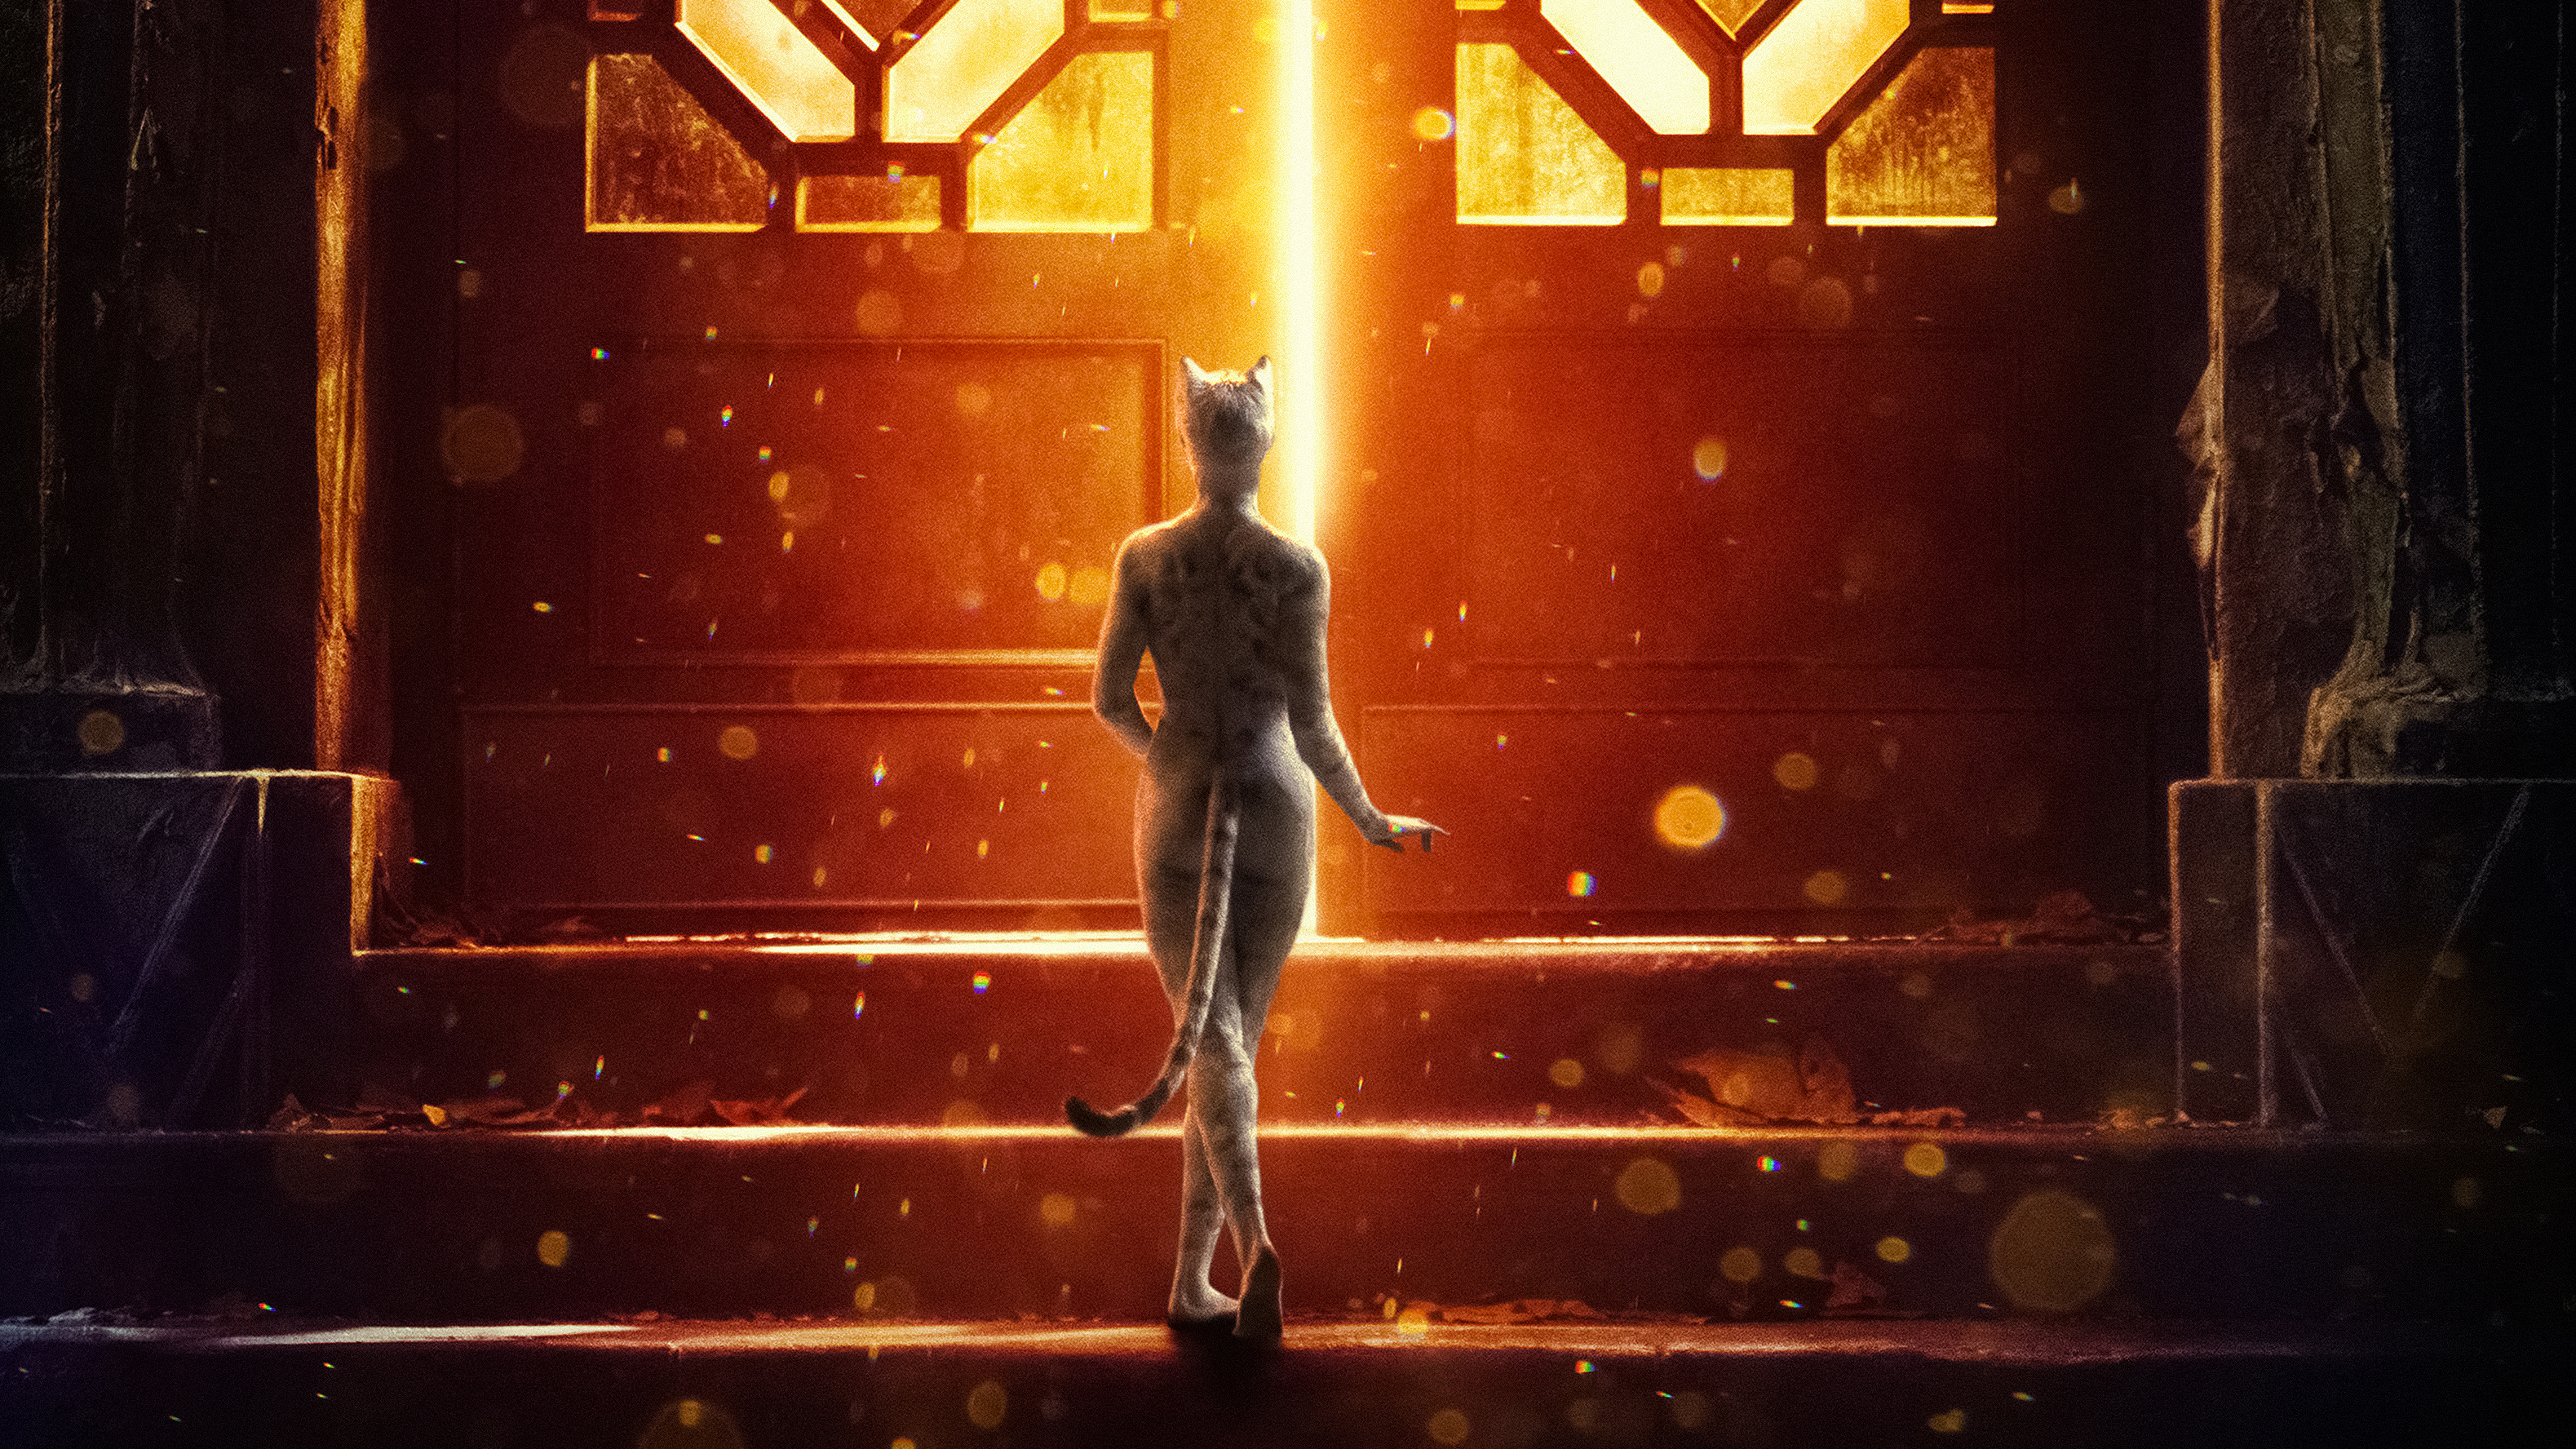 Cats Movie 2019 4k, HD Movies, 4k Wallpapers, Images